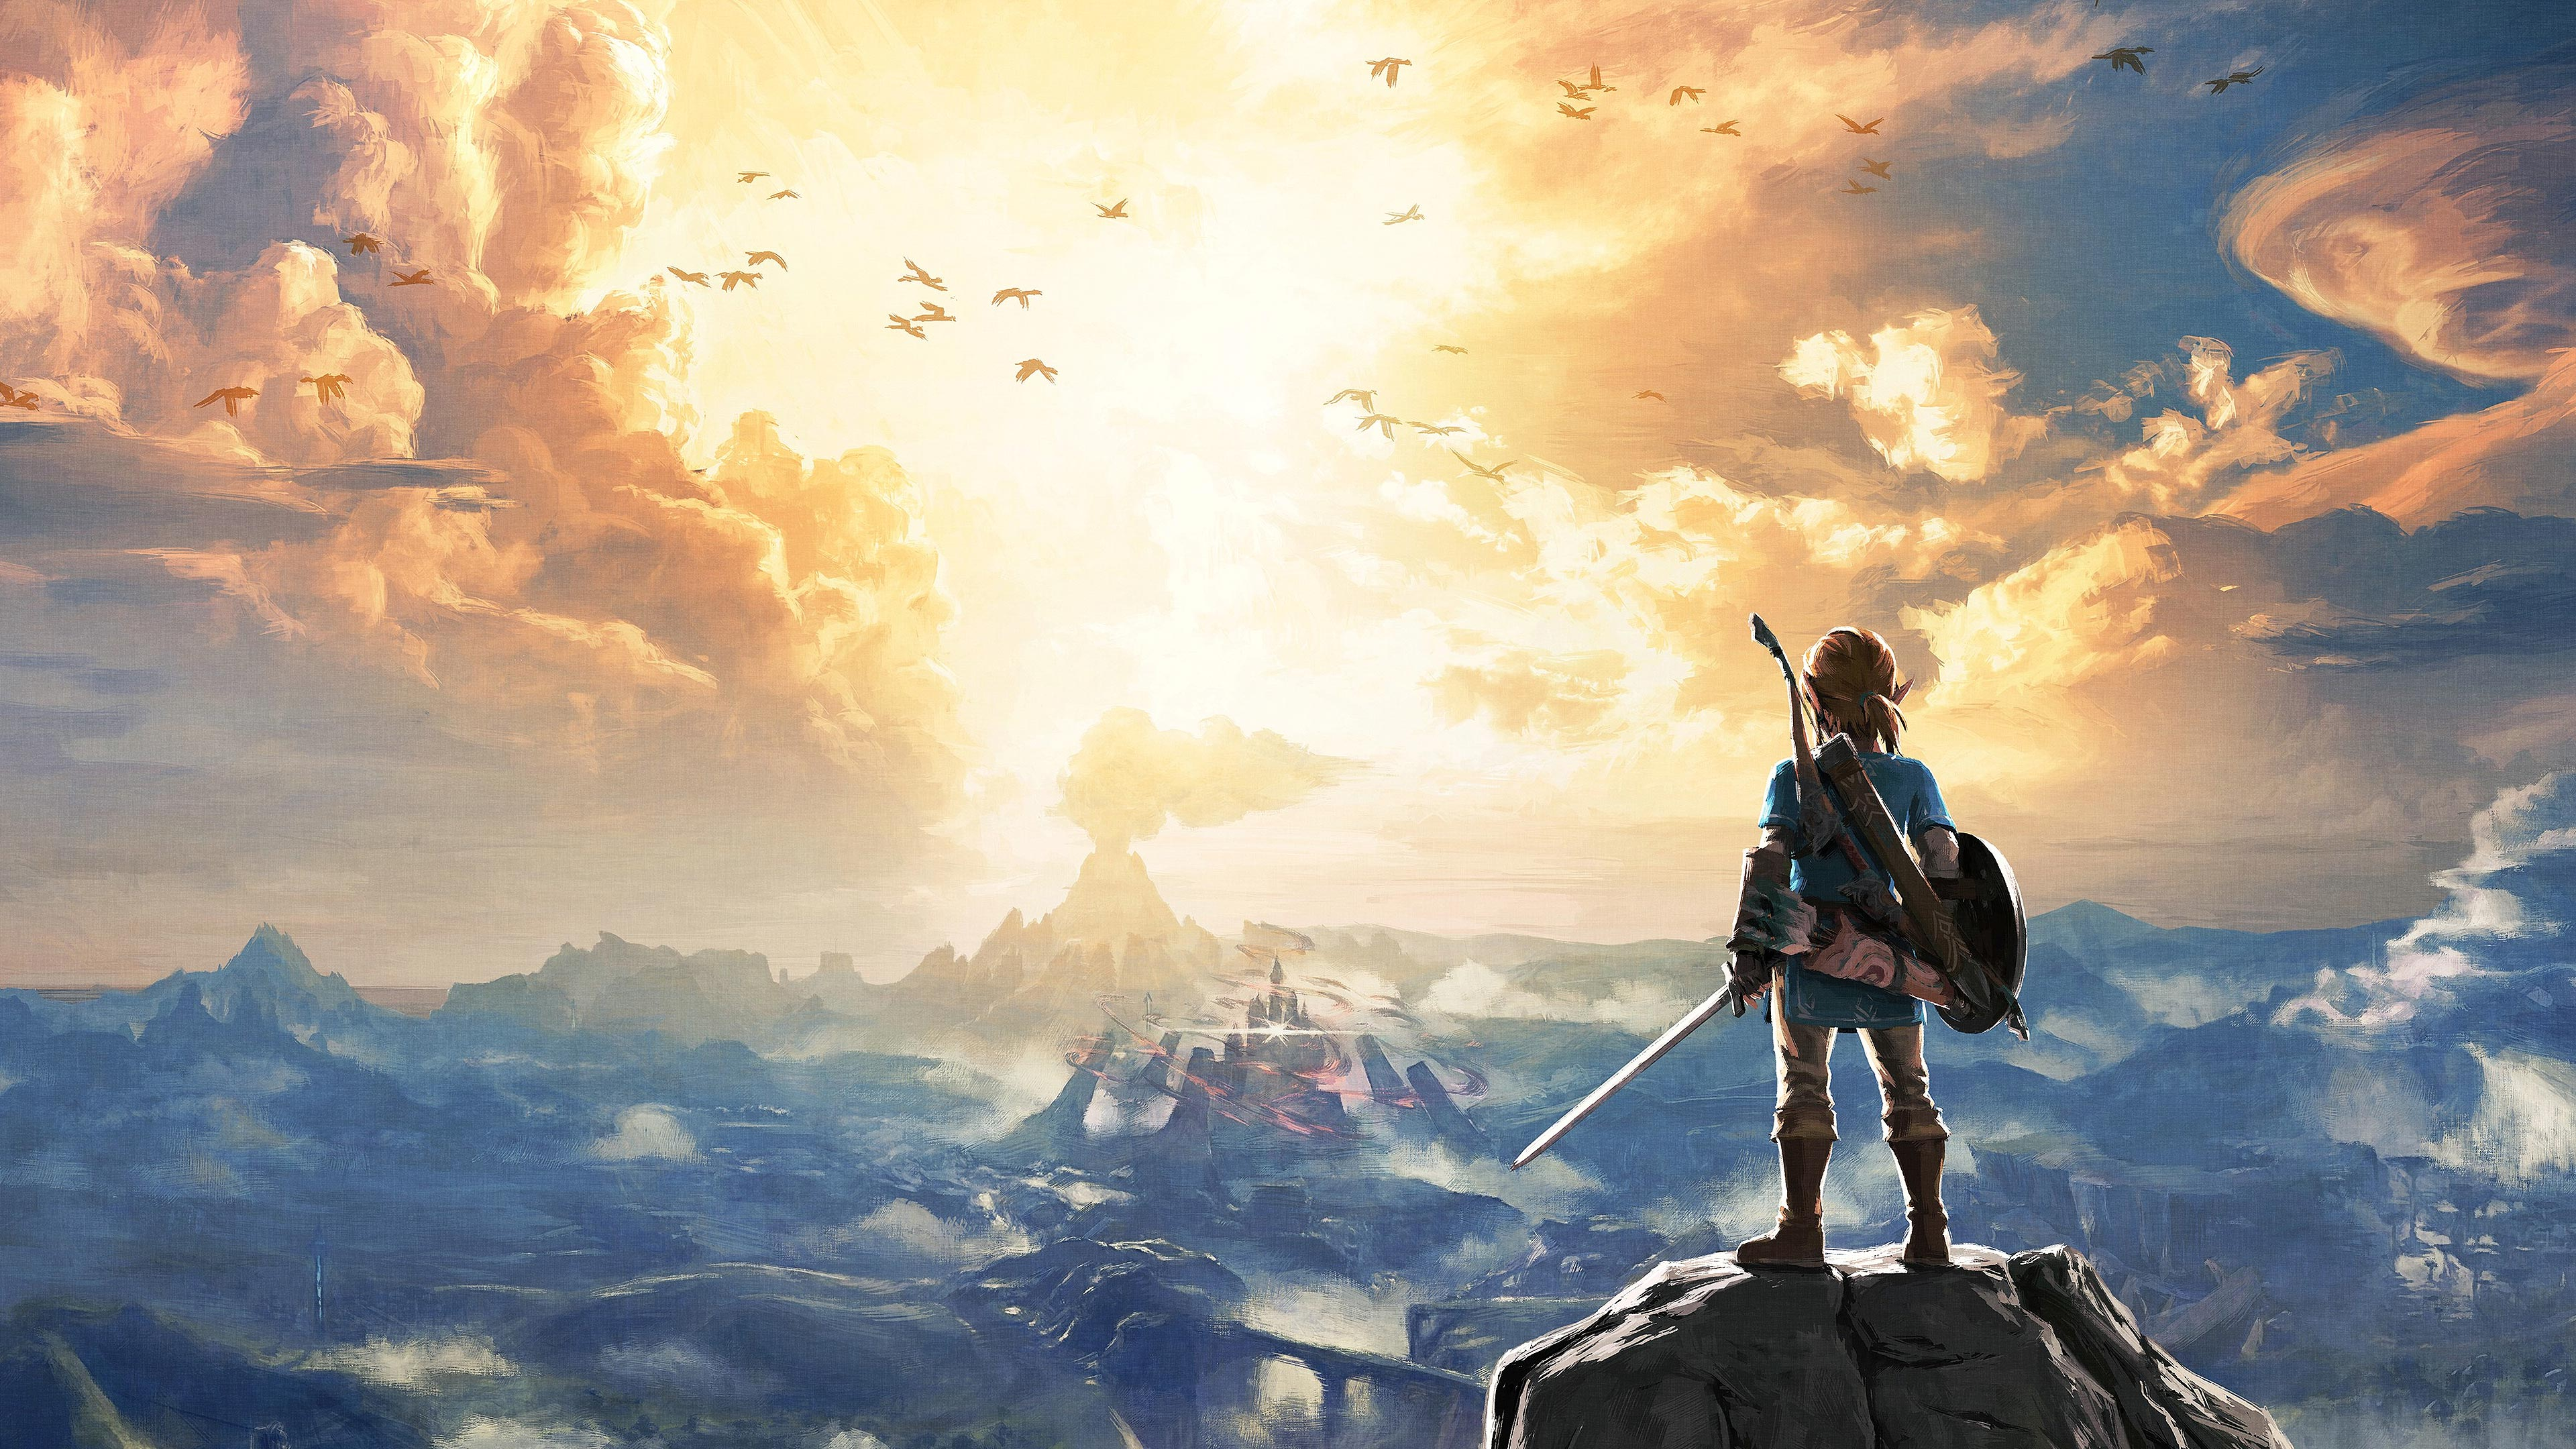 Legend Of Zelda Wallpapers Top Free Legend Of Zelda Backgrounds